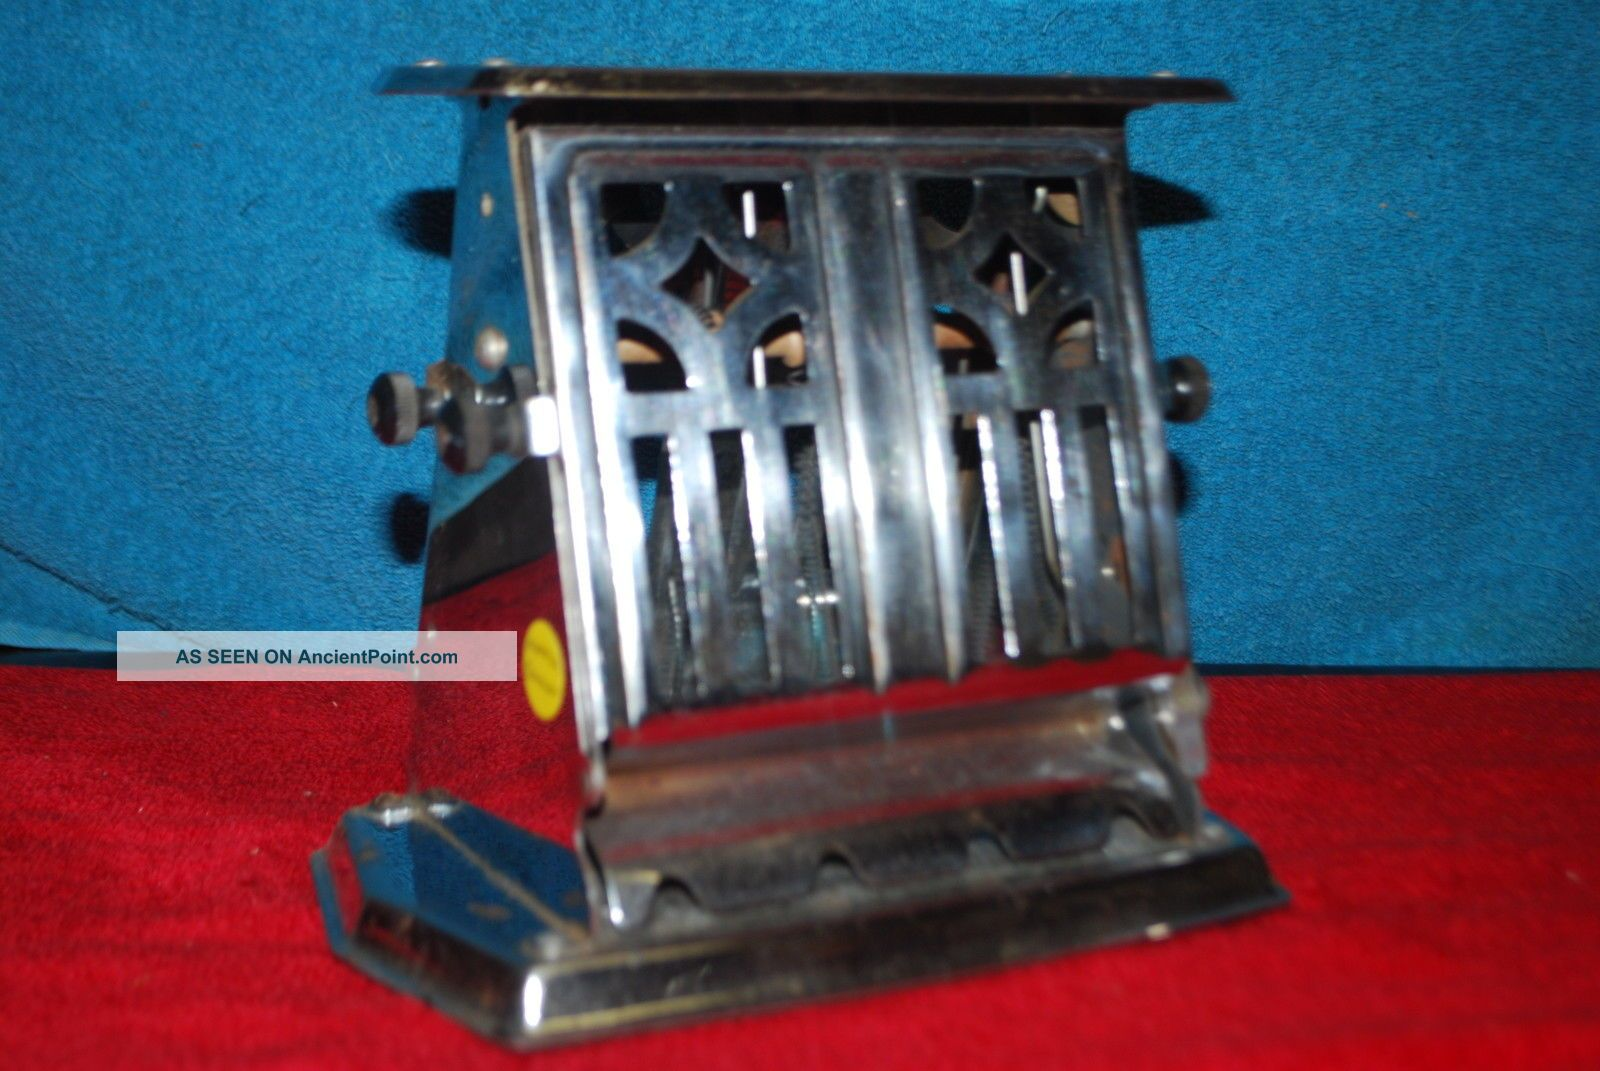 Rare 1926 Manning - Bowman Toaster Model 1228 Toasters photo